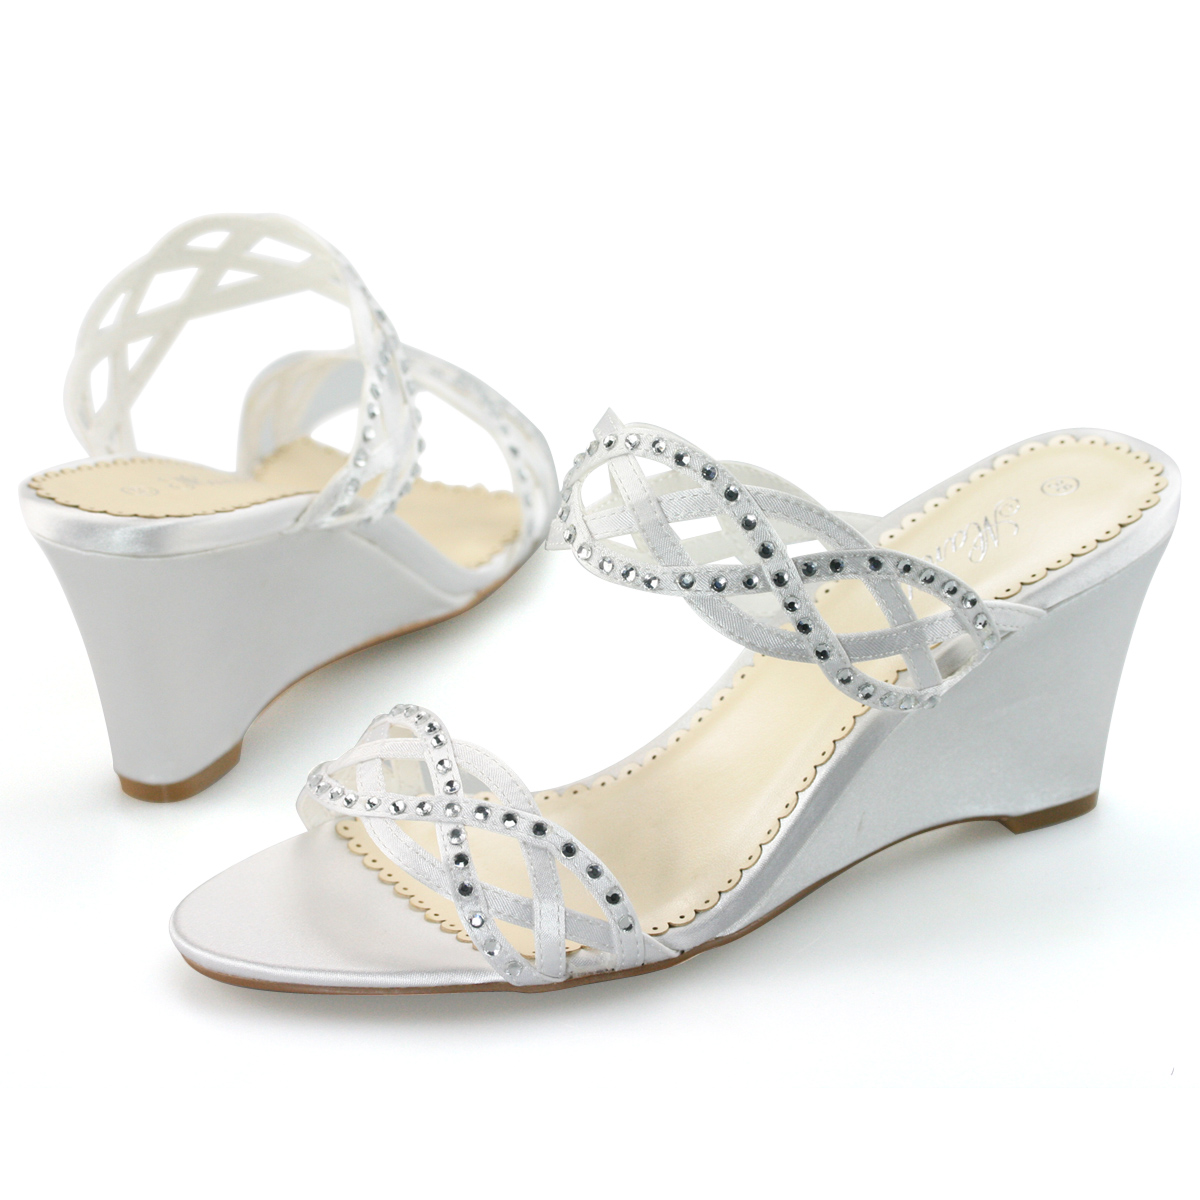 SHOEZY-Womens-Satin-Diamante-Peep-Toes-Wedding-Party-Mules-Wedges-Heels-Shoes-AU